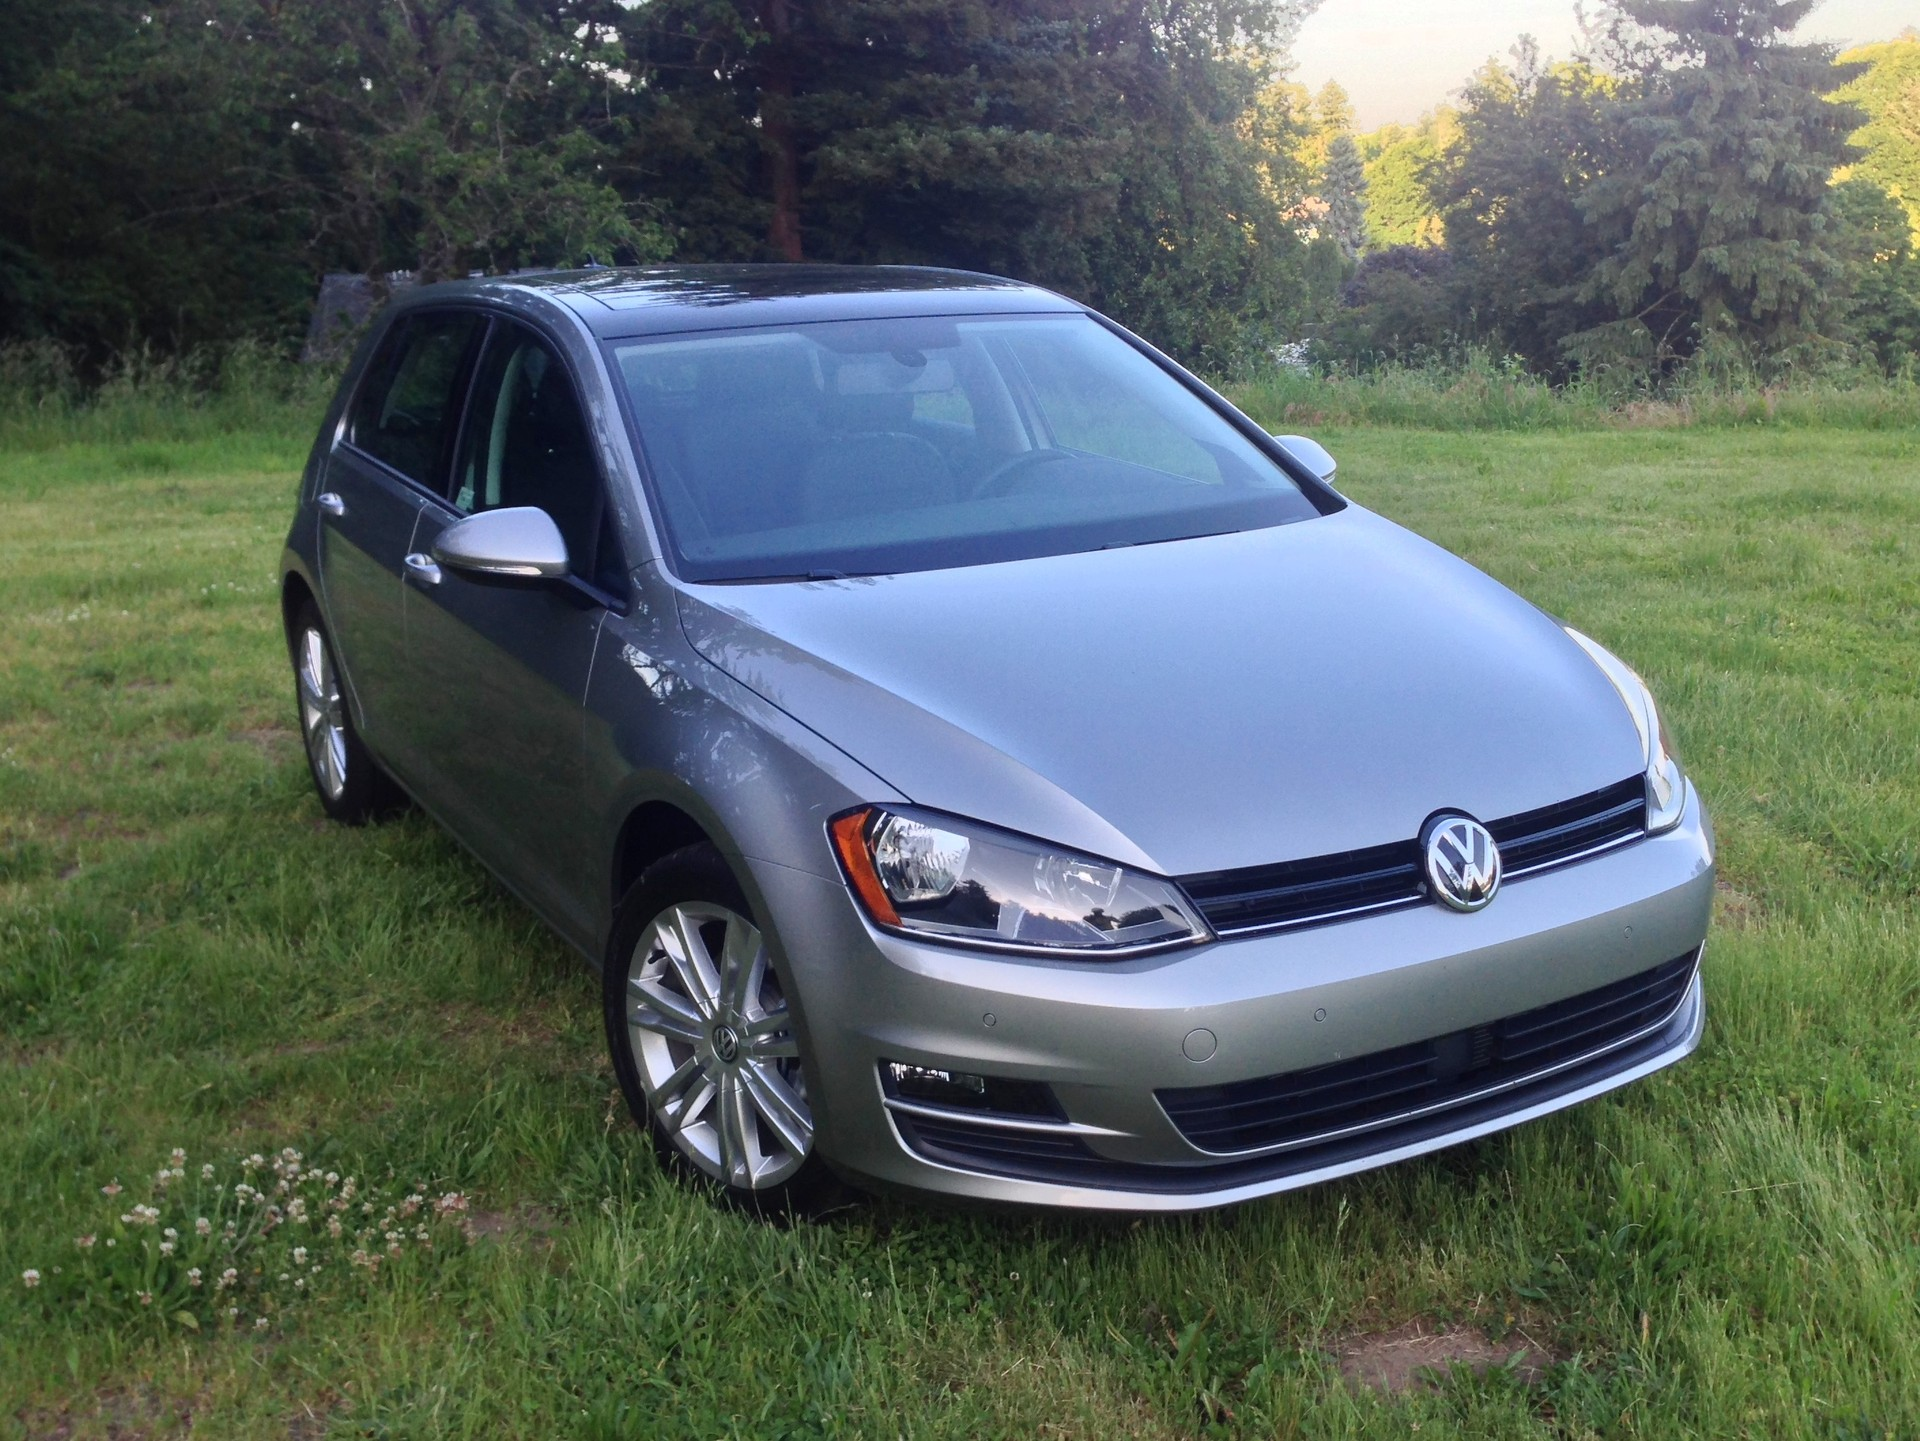 design cars recall to violating vw nearly volkswagen innovation smog circumventing standards for forced inhabitat emission emissions green vehicle tag